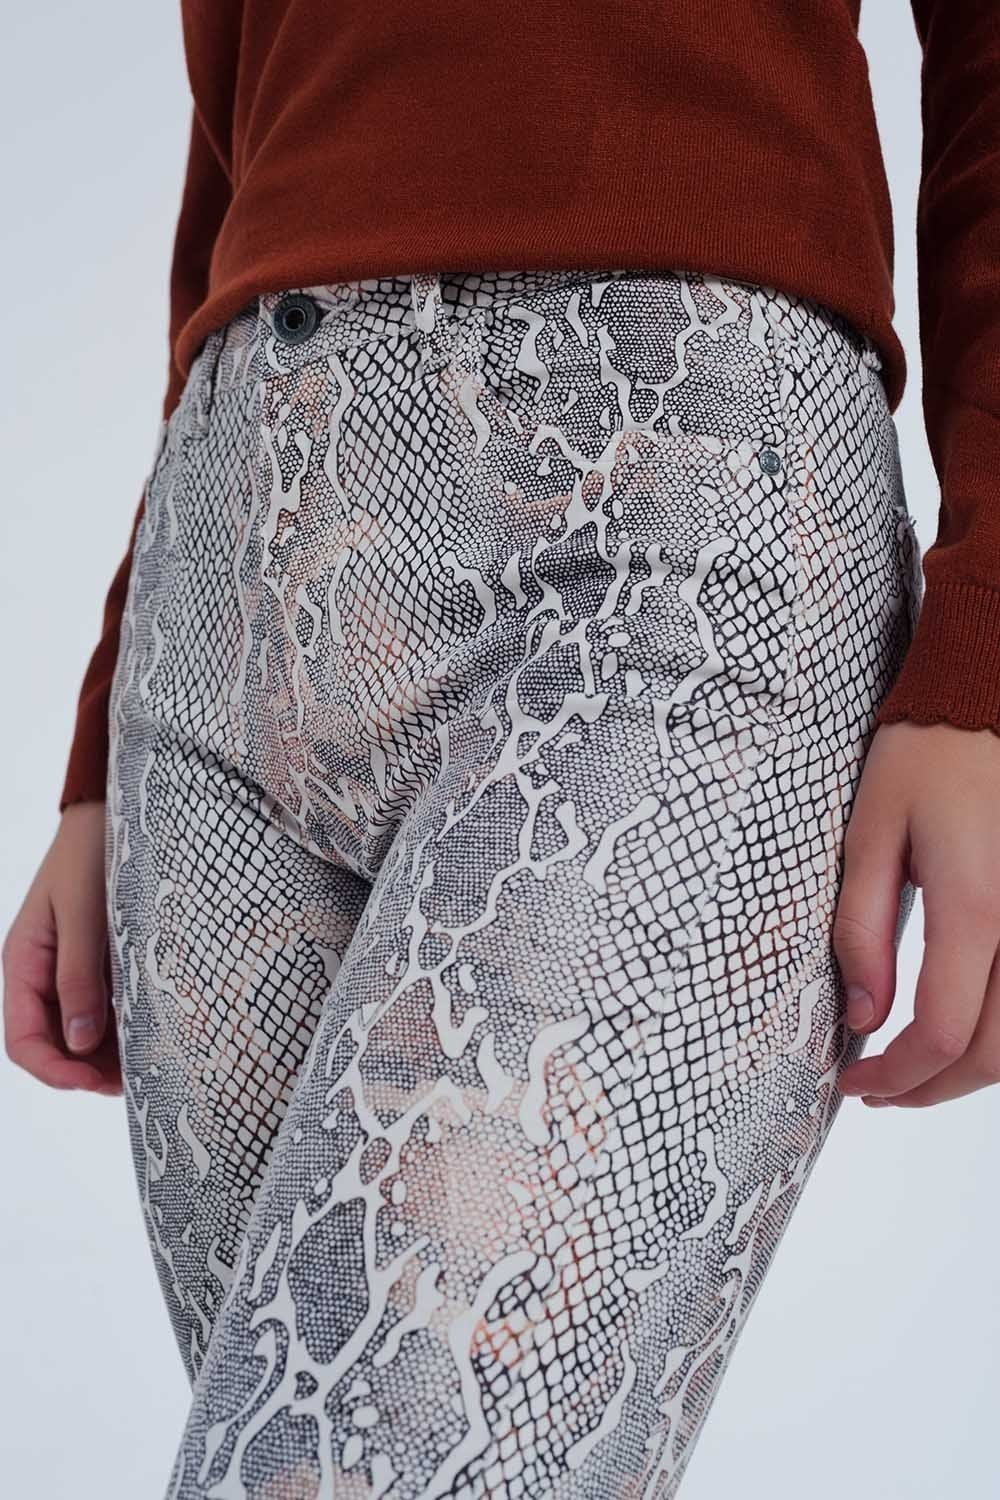 Beige coloured pants with snake print - Himelhoch's